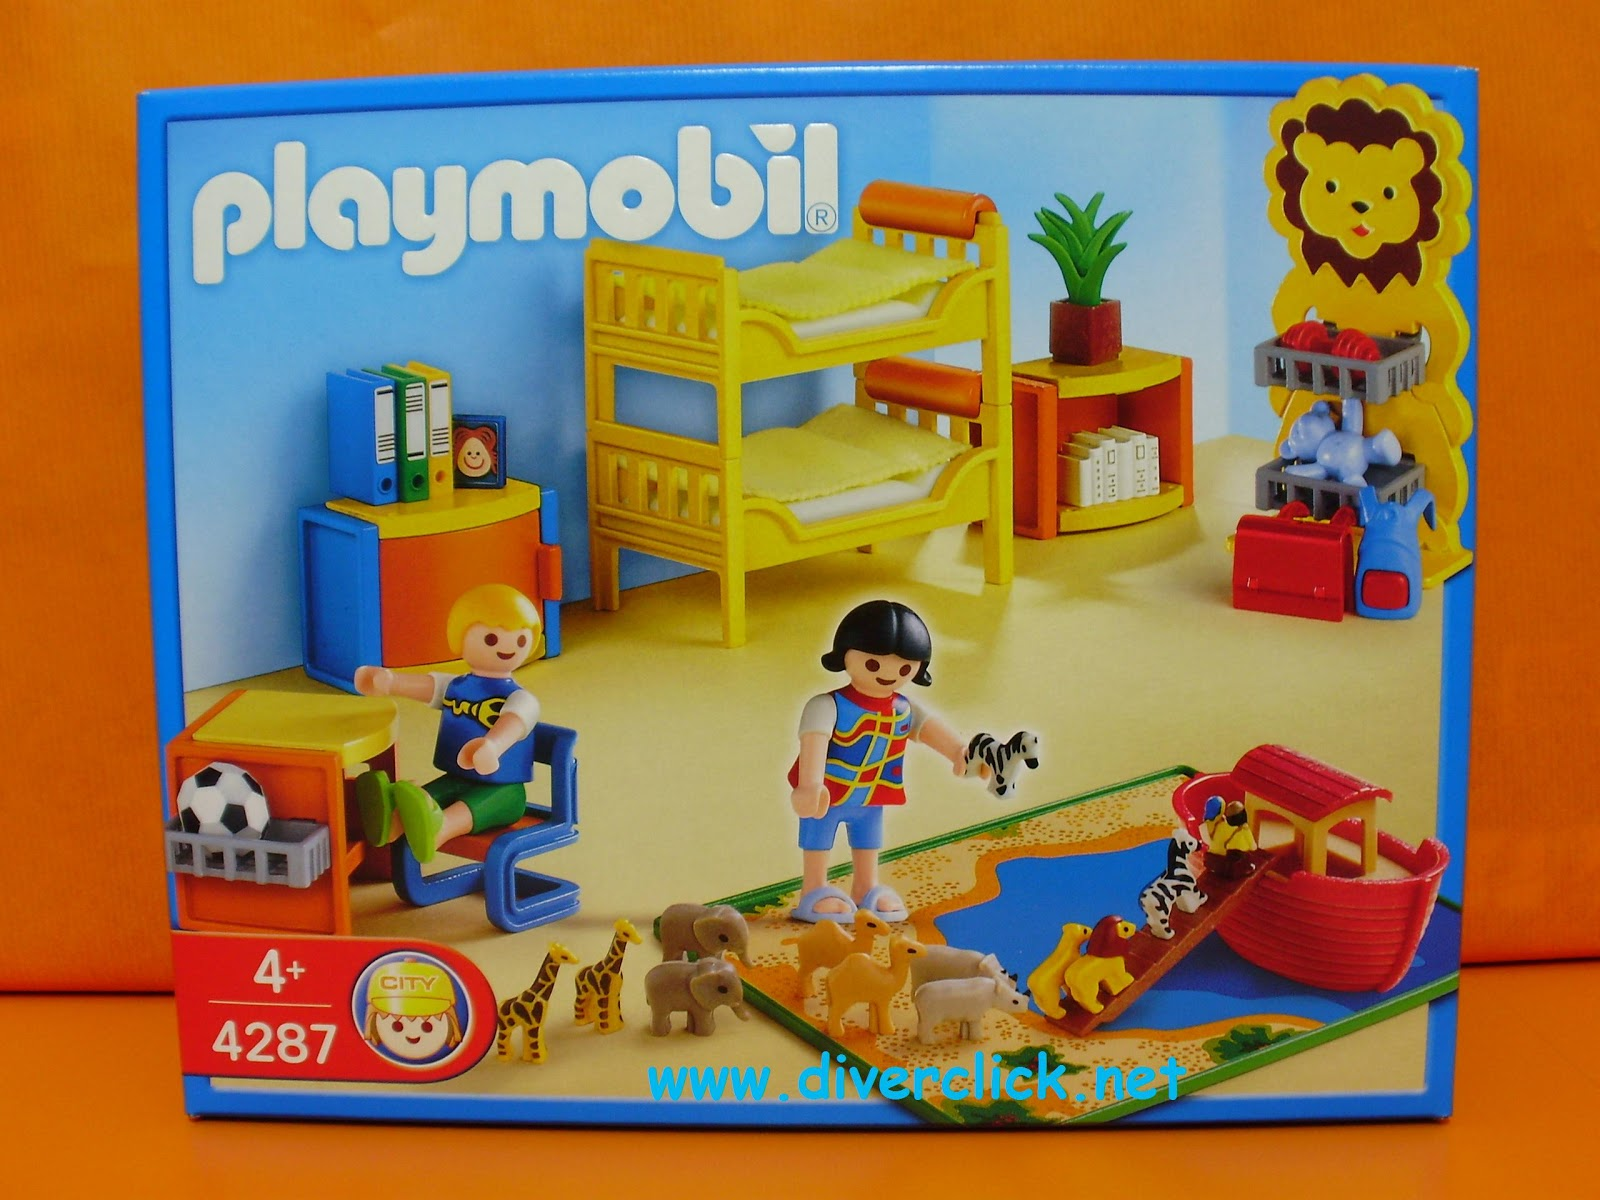 Playmobil barcelona y lego barcelona espa a venta for Playmobil kinderzimmer 4287